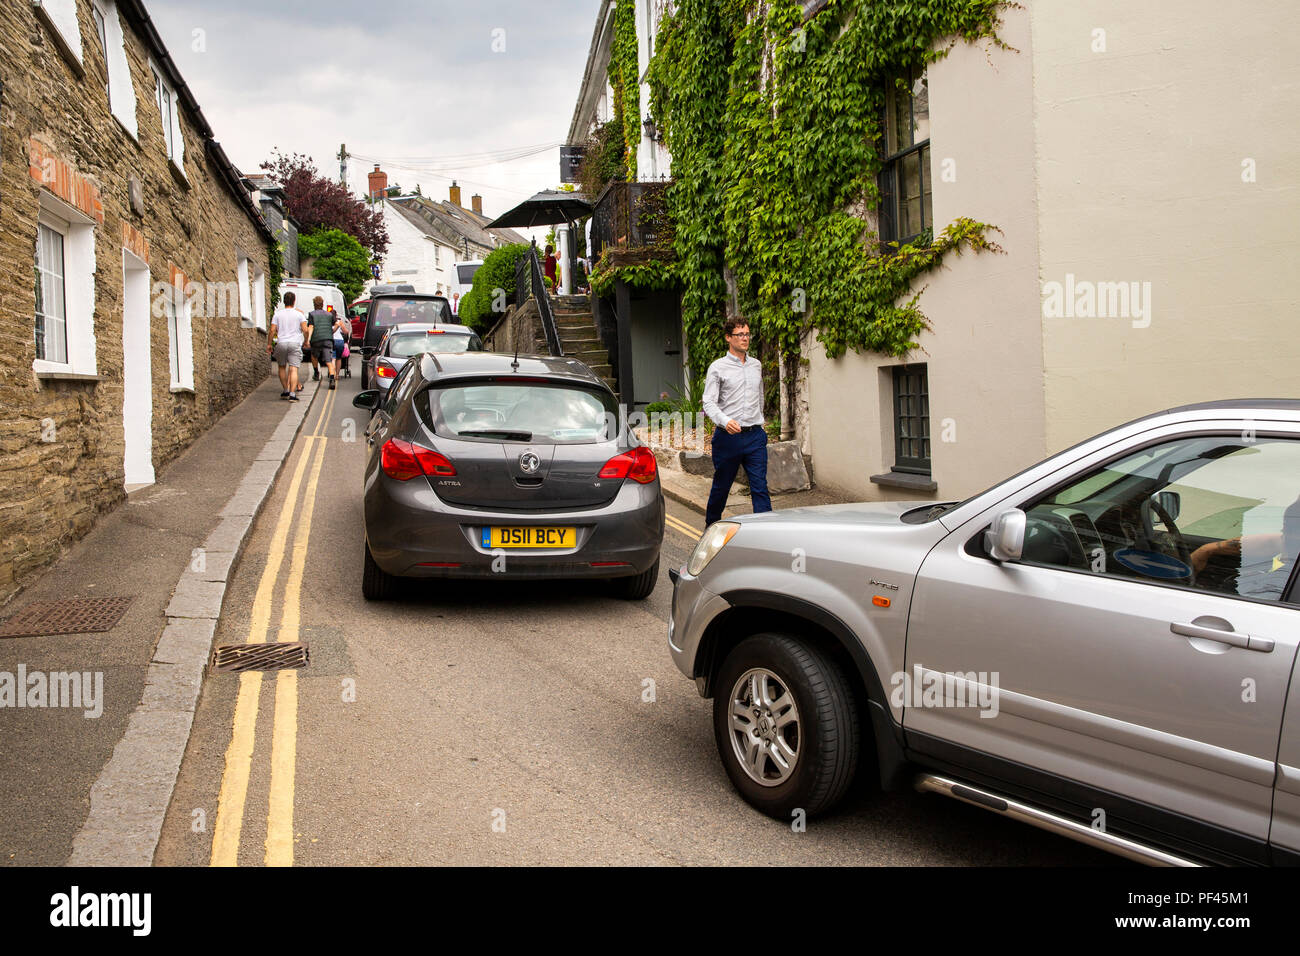 UK, Cornwall, Padstow, New Street, traffic gridlock caused by parked car - Stock Image